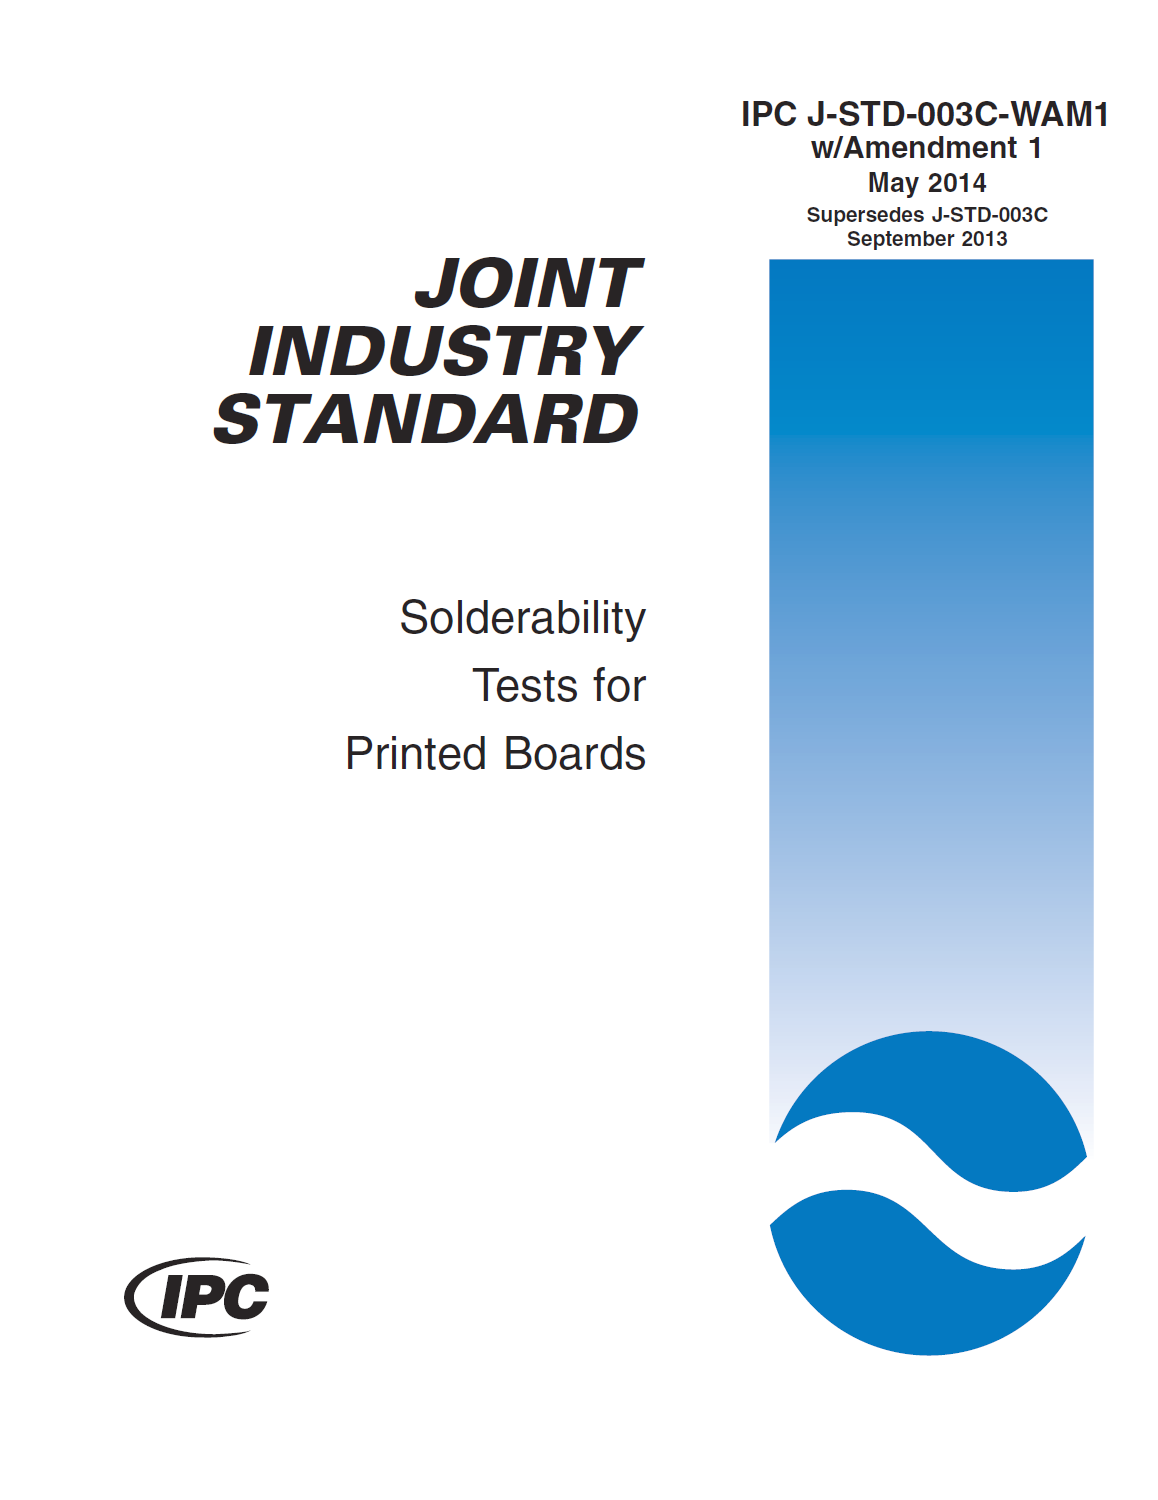 IPC J-STD-003C WAM1: Solderability Tests for Printed Boards